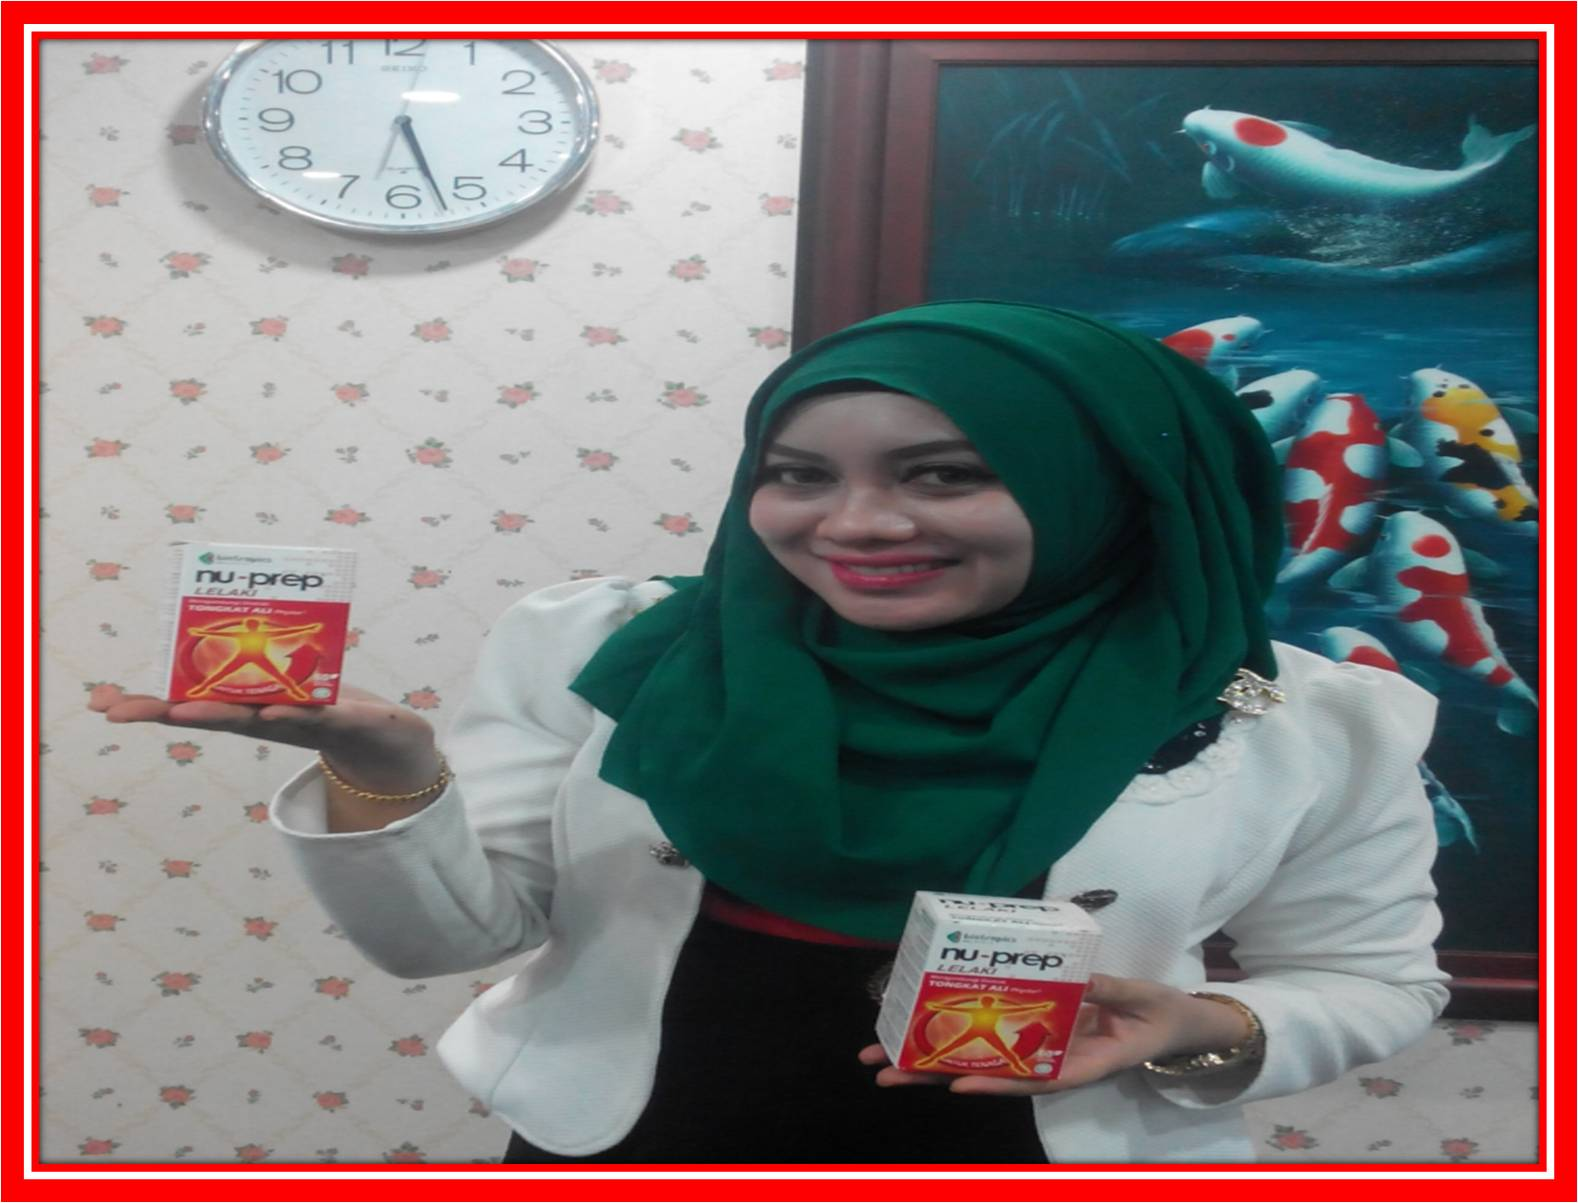 Nu-Prep Tongkat Ali 'Perfect Supplement'